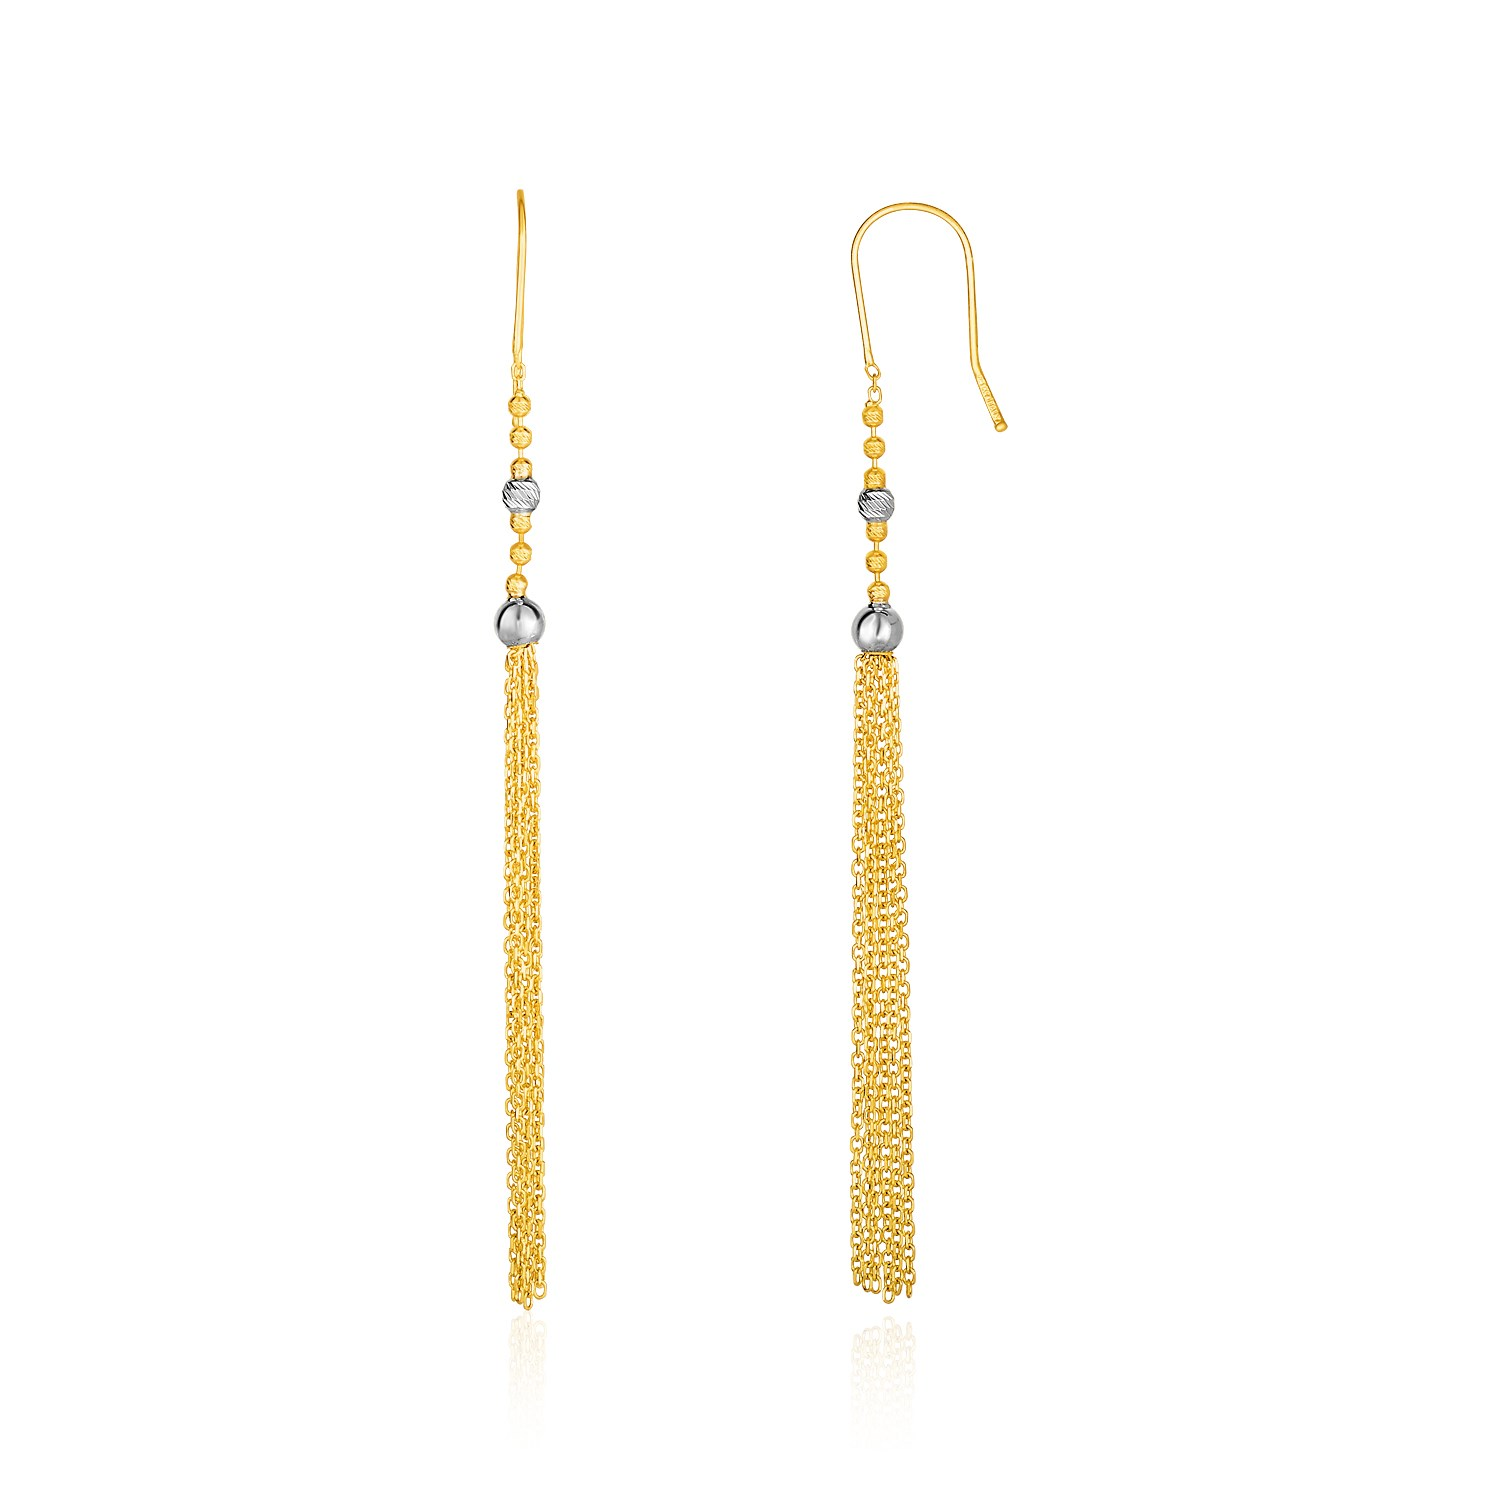 14K Two-Tone Yellow and White Gold Ball and Multi-Strand Tassel